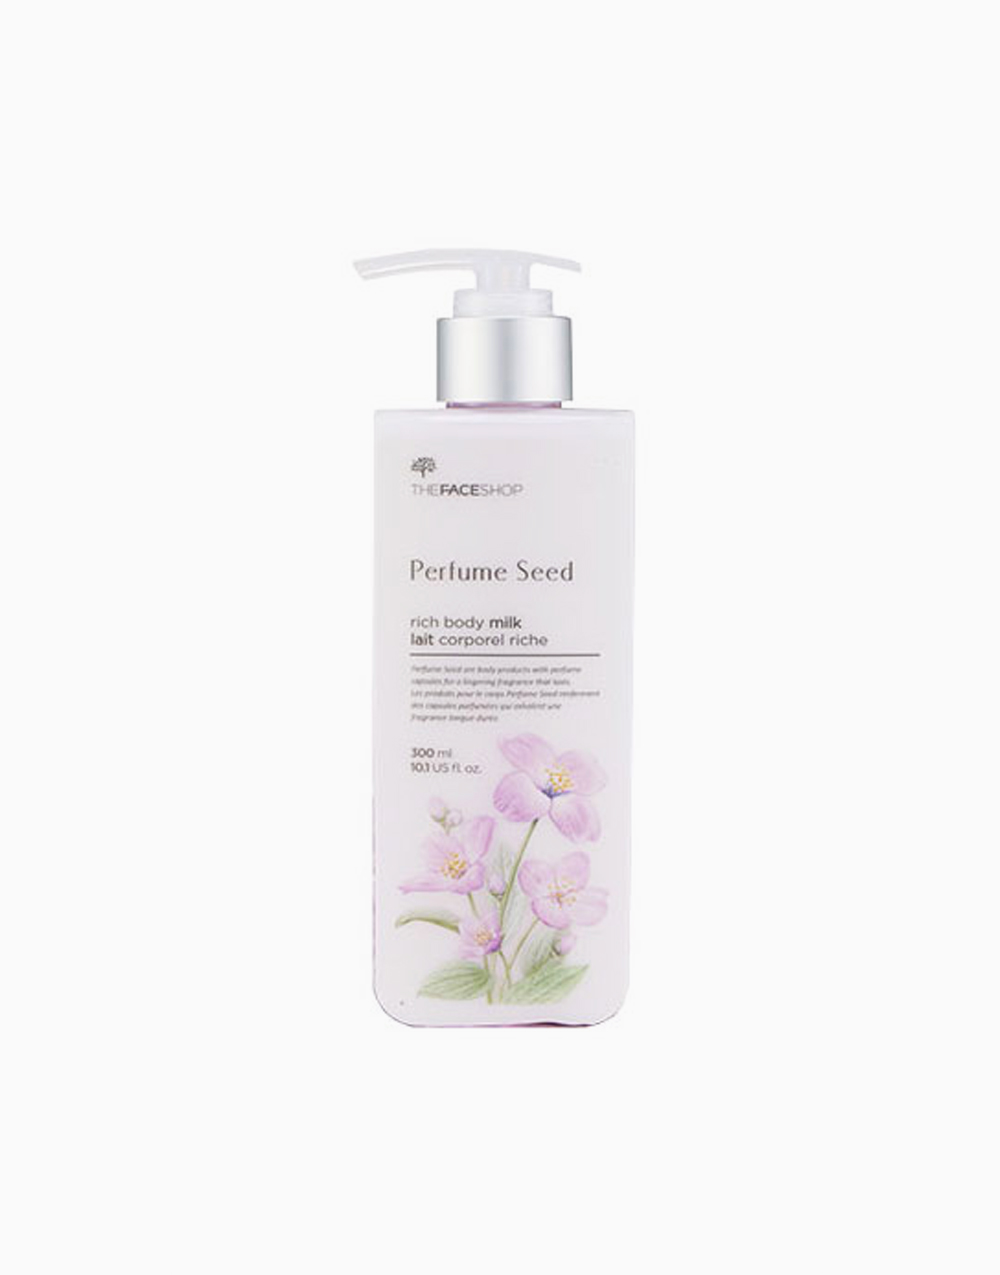 Perfume Seed Rich Body Milk by The Face Shop